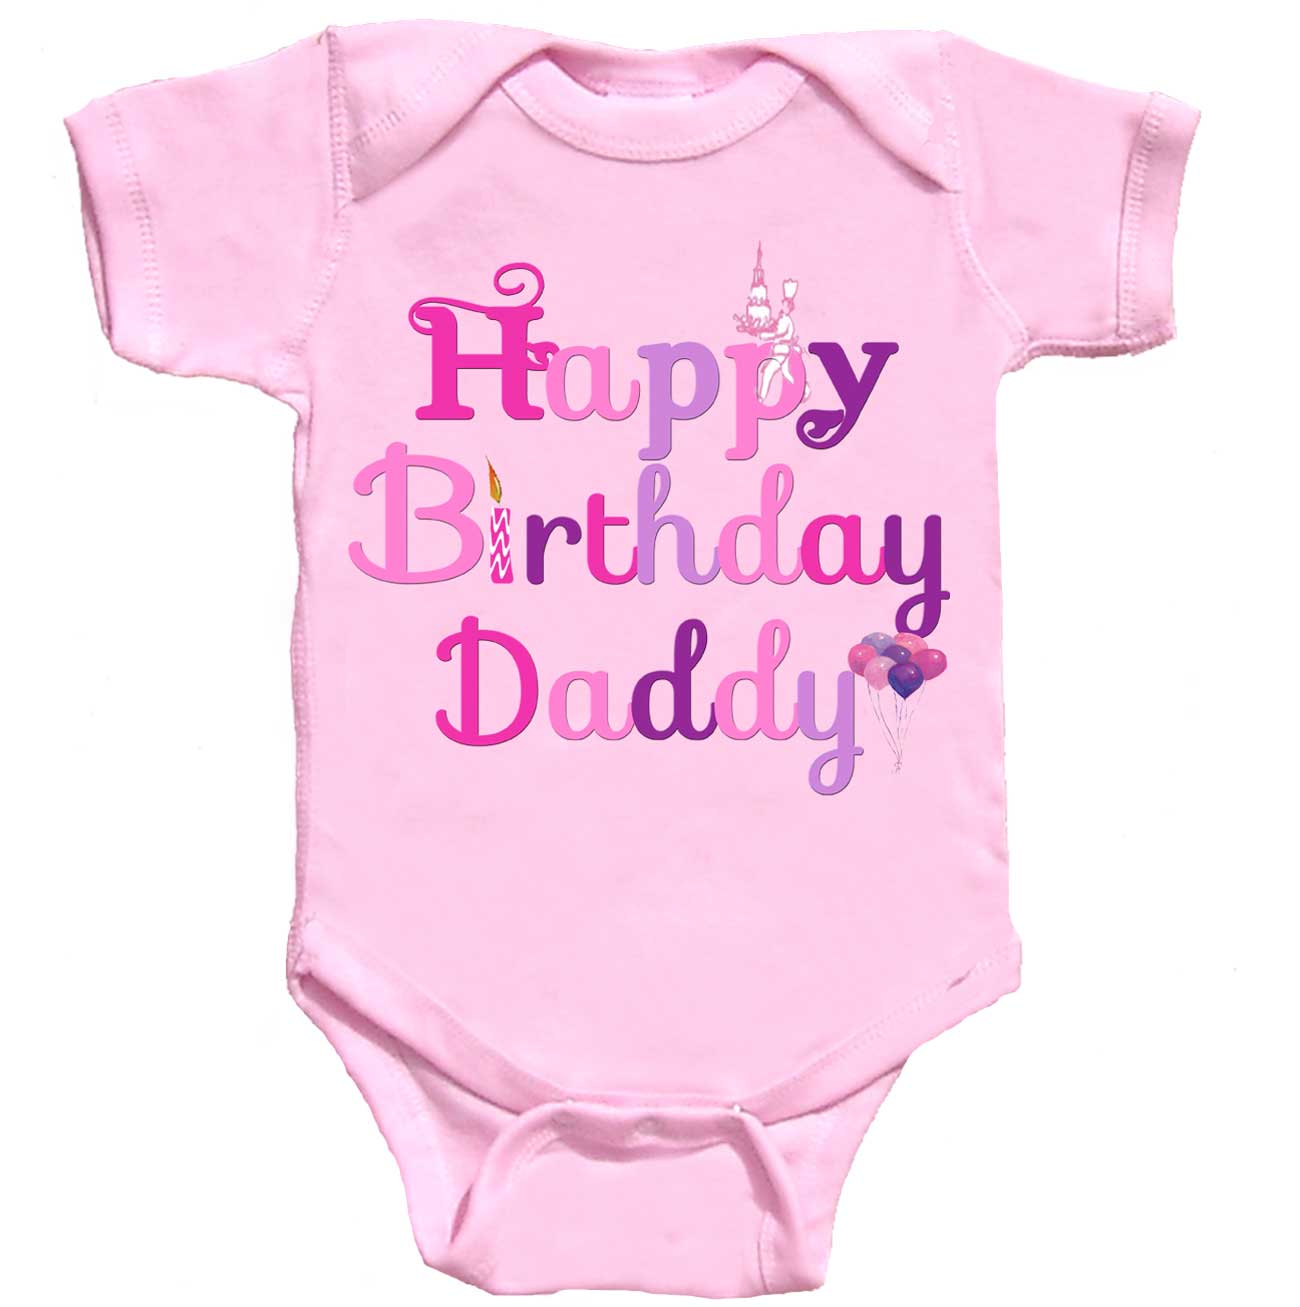 Happy Birthday Daddy Bodysuit Pink